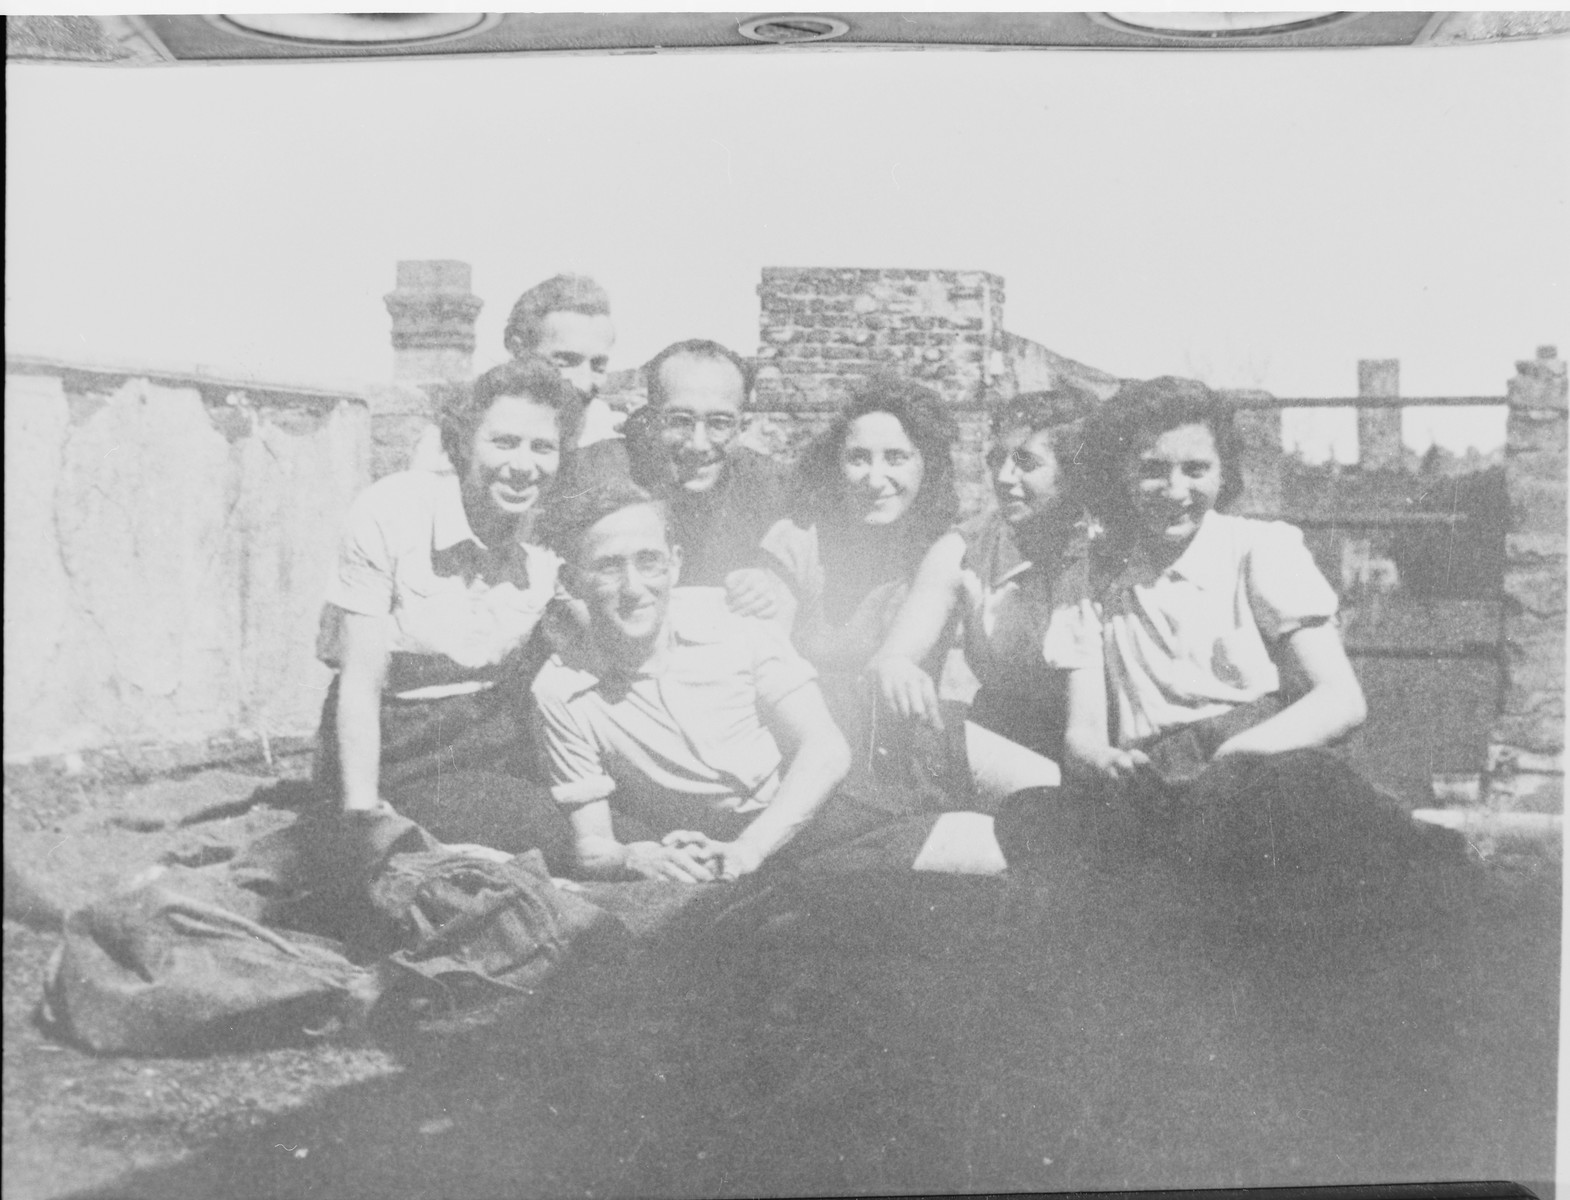 Group portrait of Zionist youth on the roof top of the Youth Aliyah school on Artillerie Strasse 14 in Berlin (where the school was relocated after the original building was damaged by a bomb).    Pictured from left to right are: Lotte Kaiser, Schlomo Lewin and Jizchak Schwersenz.  Gad Beck is reclining in the foreground.